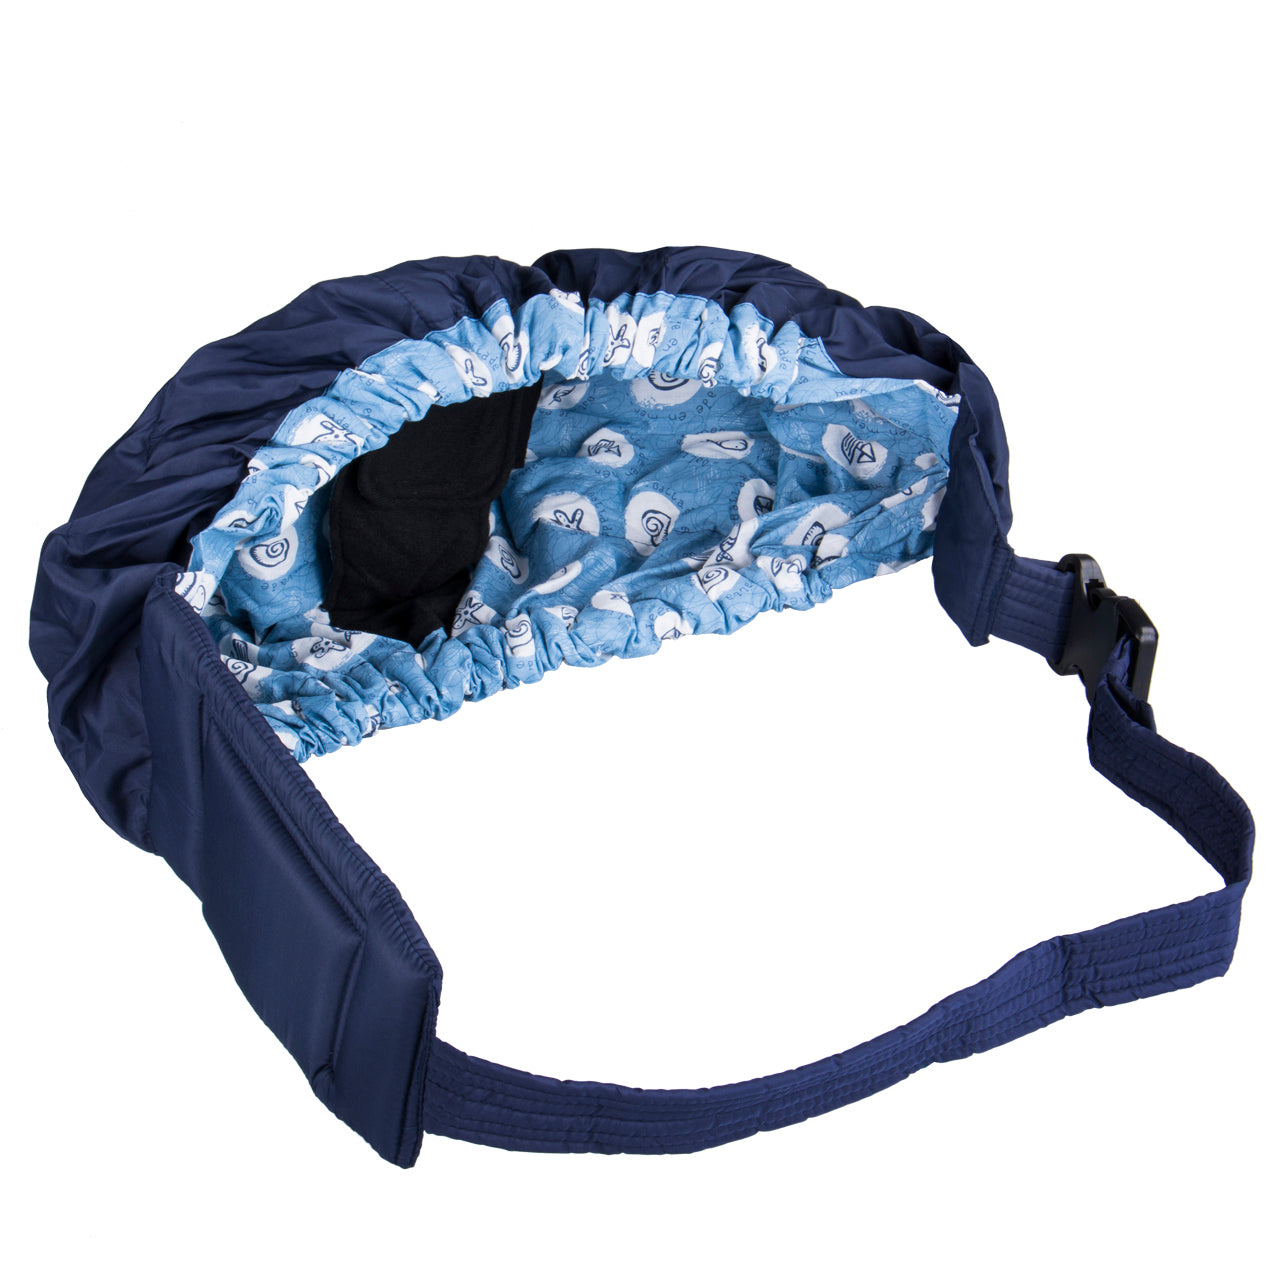 Pudcoco Child Sling Baby Carrier Wrap Swaddling Kids Nursing Papoose